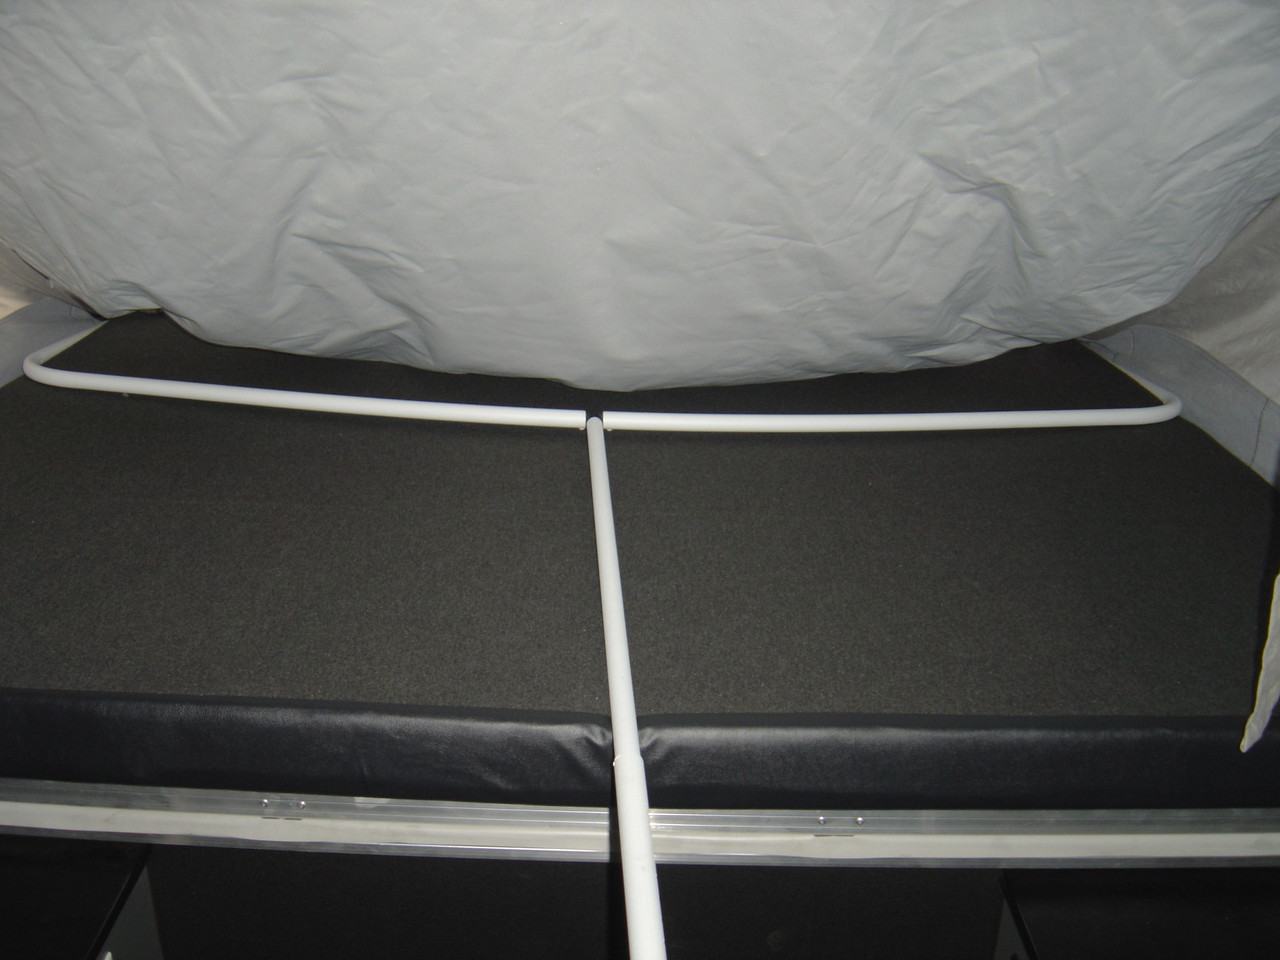 The support rod at the end of the tent will rest on the top of the mattress. The Shepherd pole goes under the mattress.